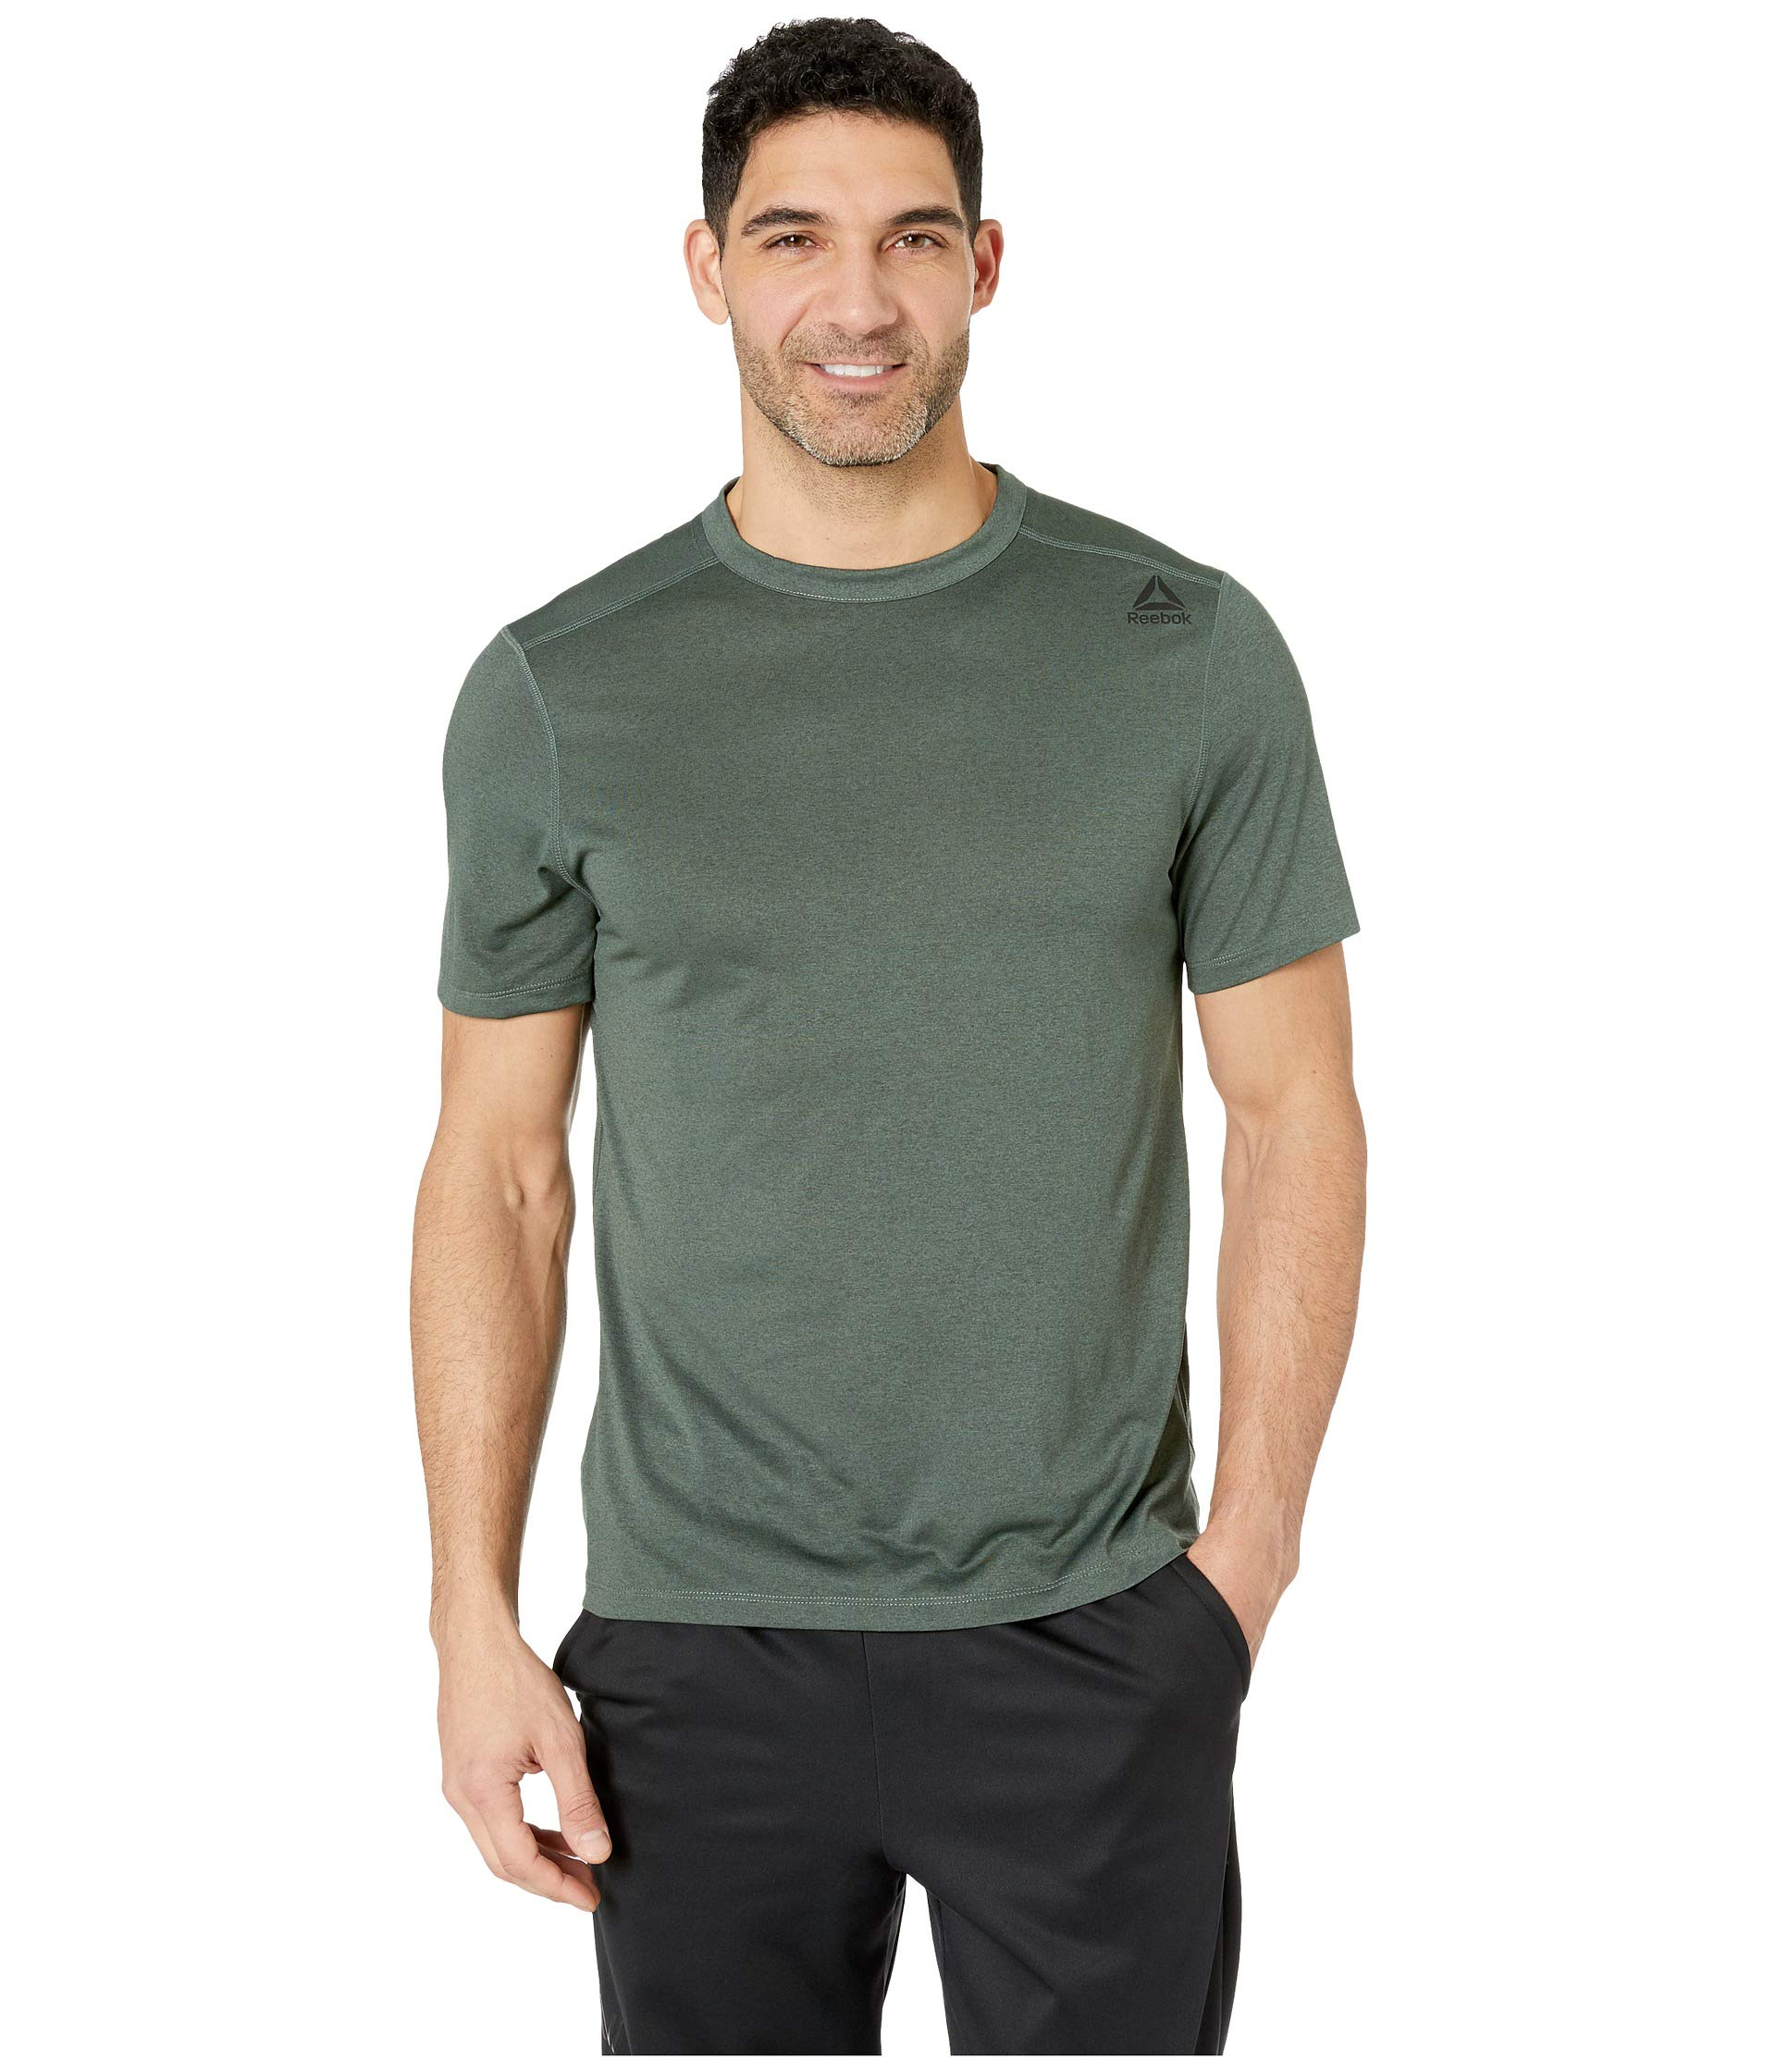 shirt Reebok T Essentials Chalk Green Sport qHHaW8nv